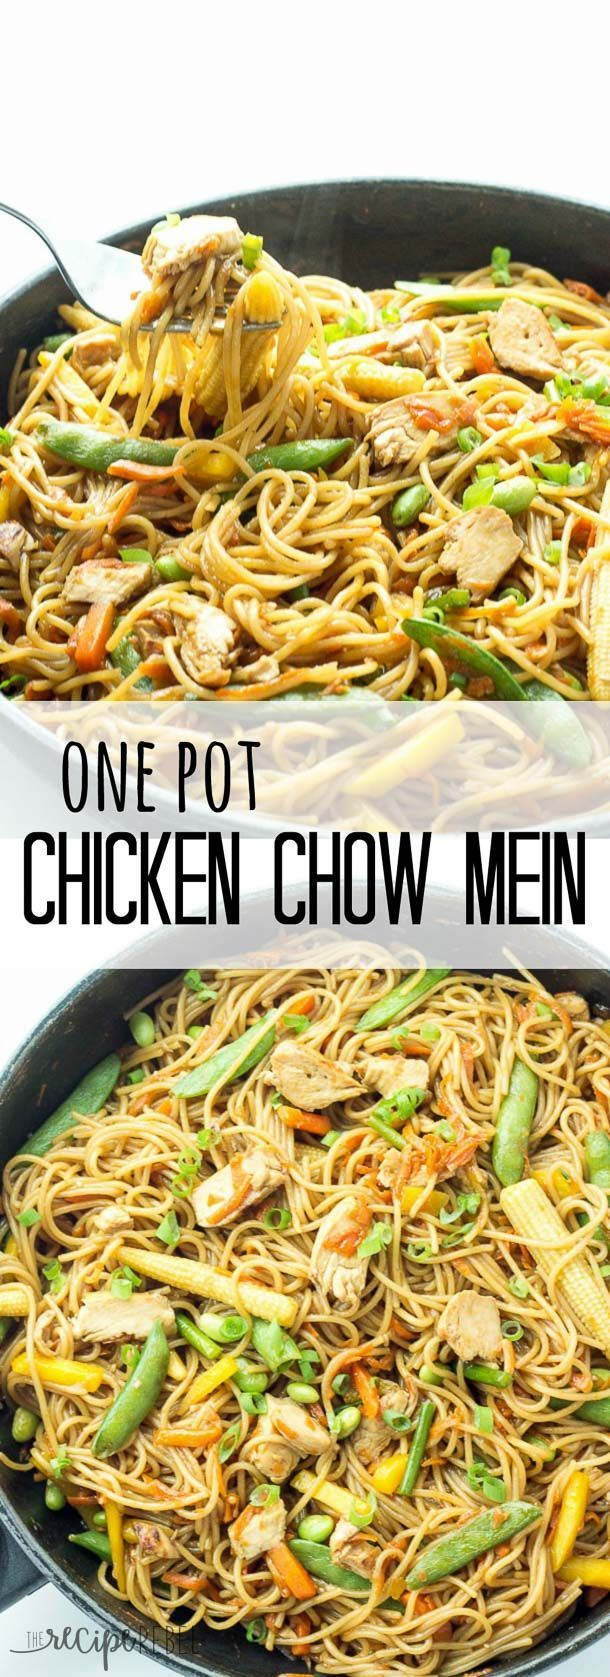 never settle for takeout again! Comes together in 30 minutes or less!